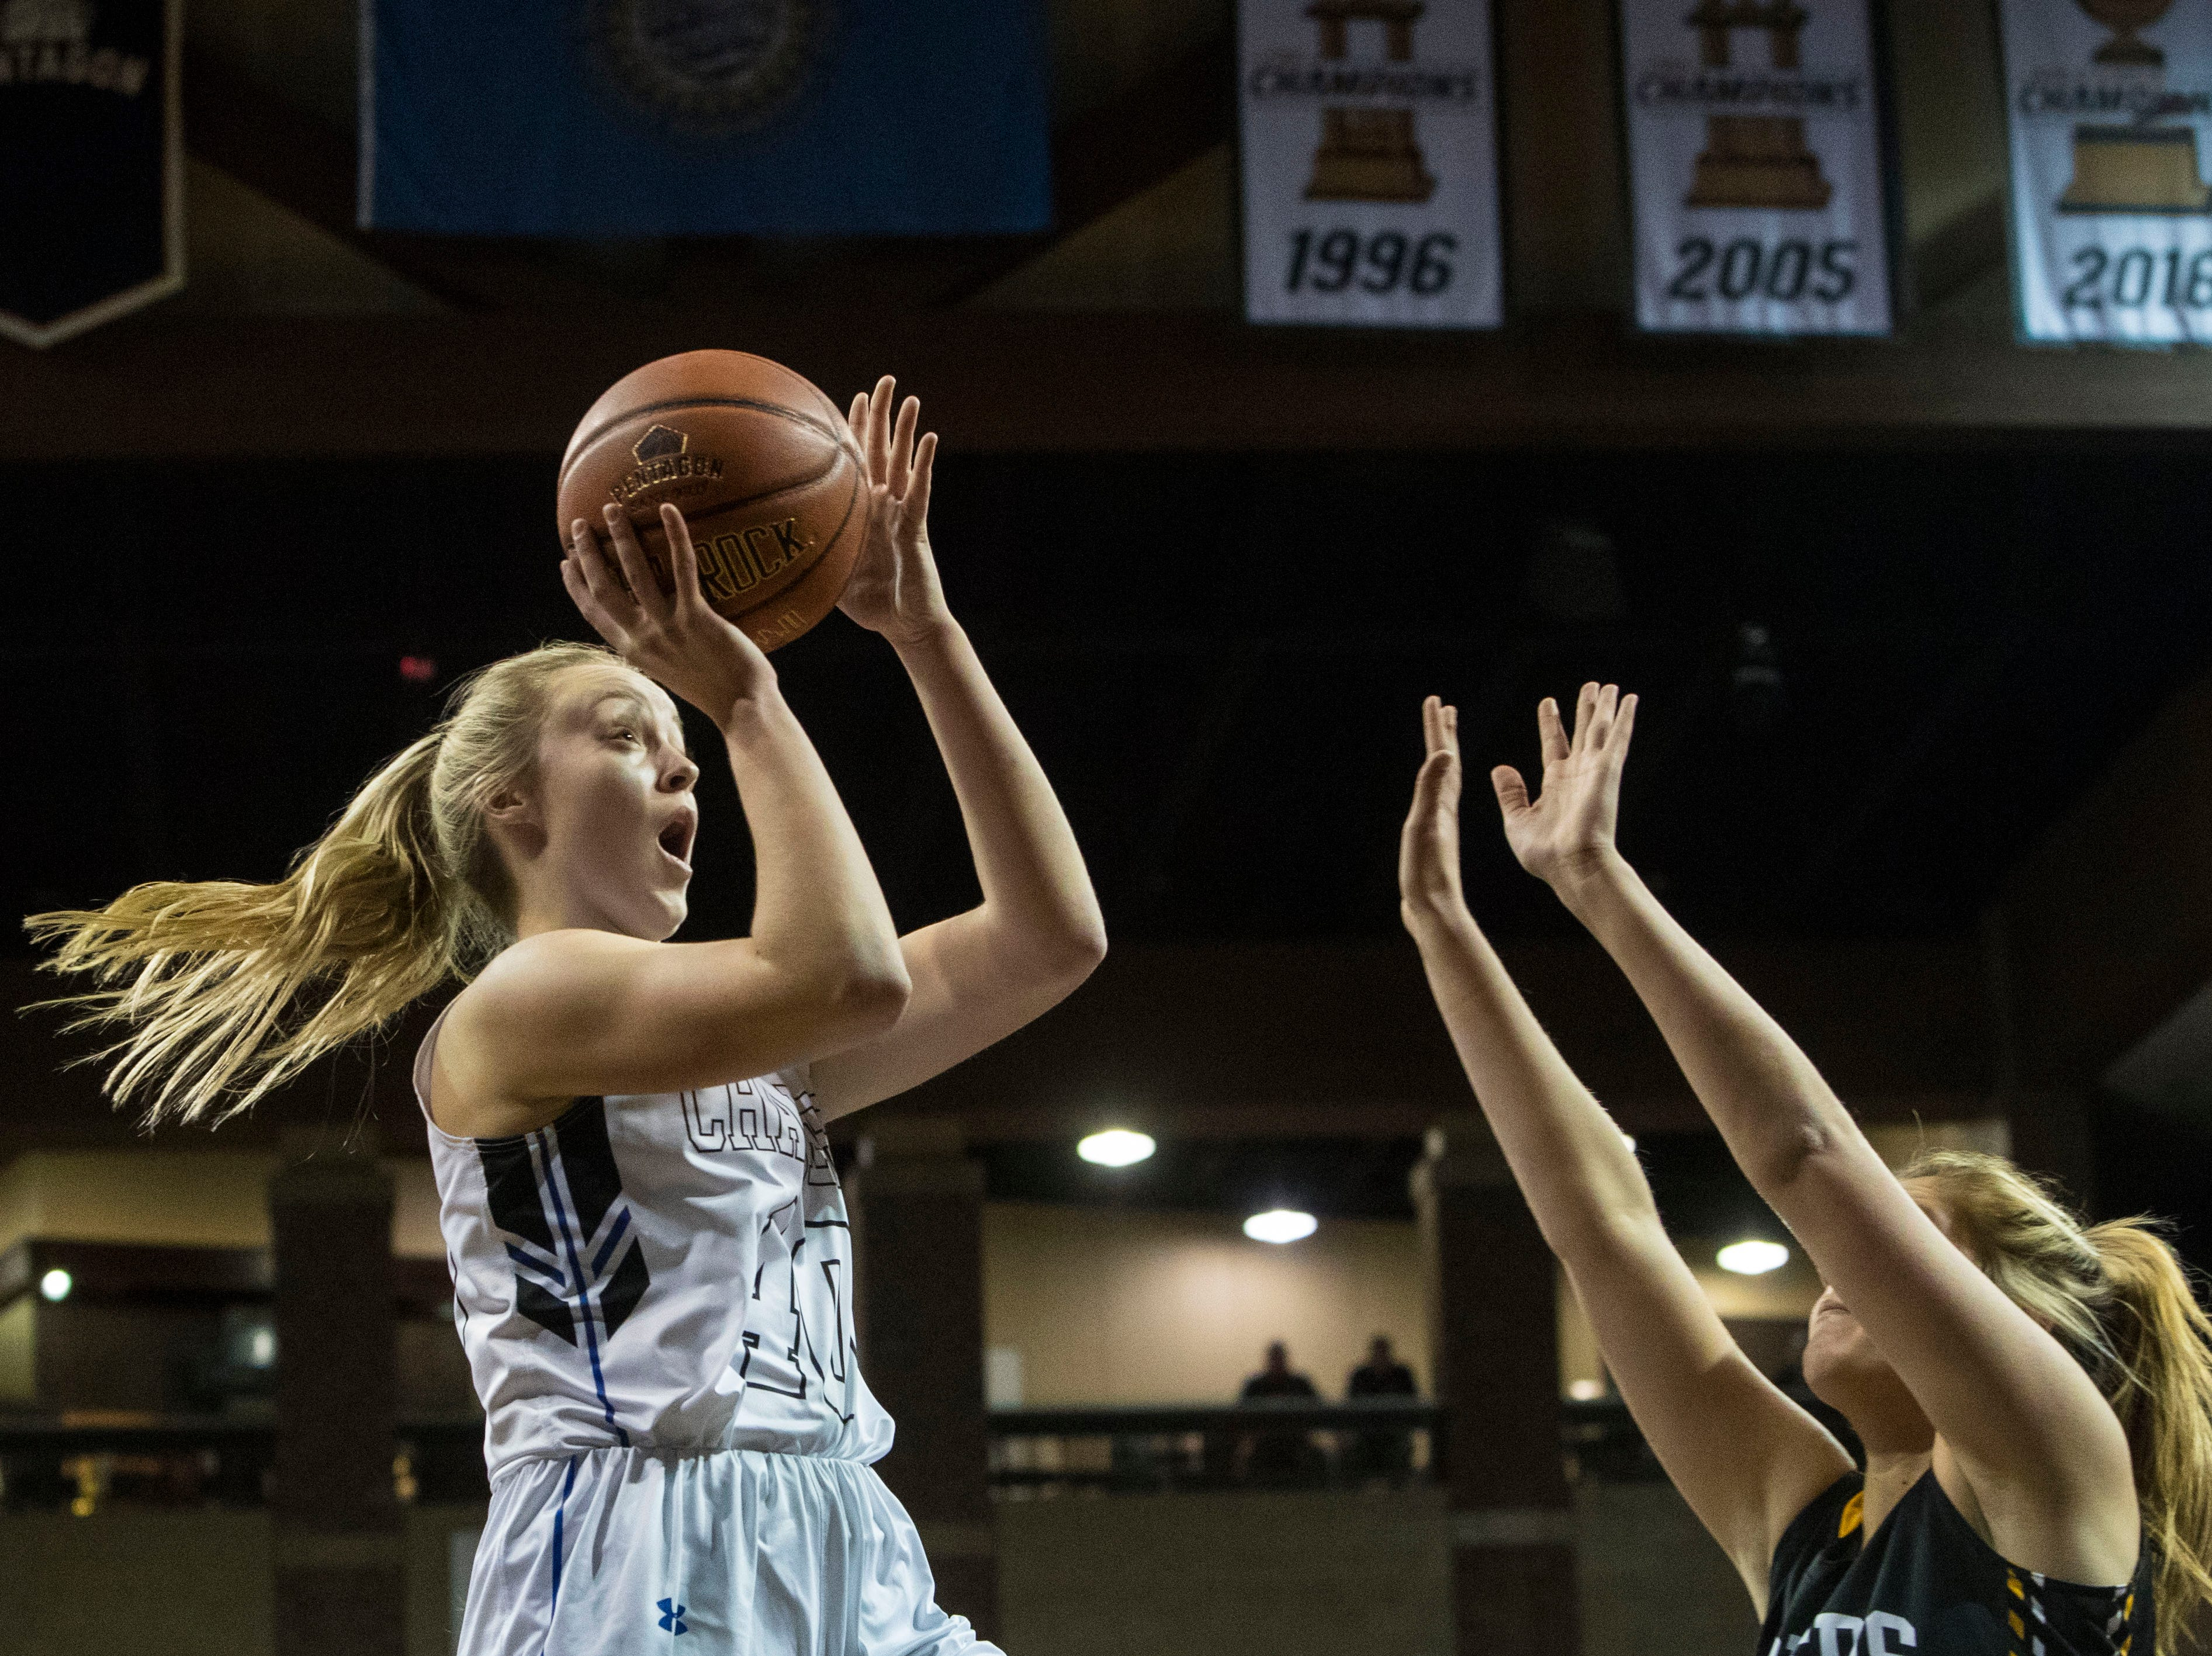 Sioux Falls Christian's Lauren Tims (40) shoots the ball over Hutchinson's Abby Starke (4) at the Hoop City Classic at the Sanford Pentagon in Sioux Falls, S.D., Saturday, Dec. 29, 2018.